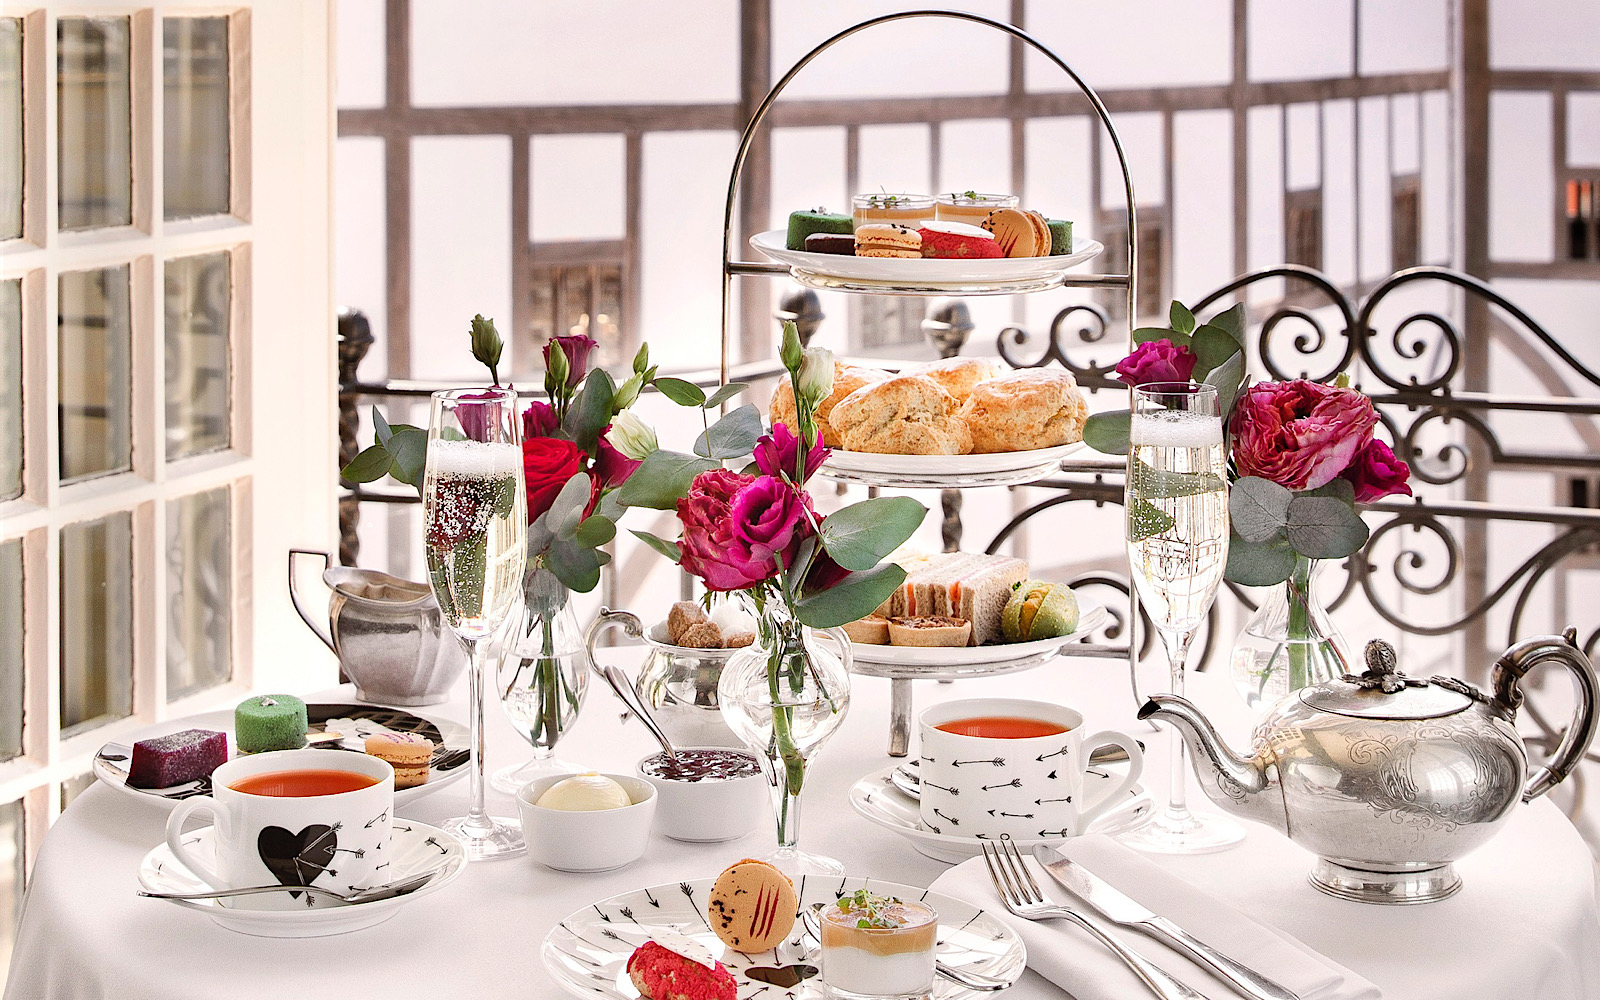 A lavish table set-up of afternoon tea shows tea, cakes and intricate crockery